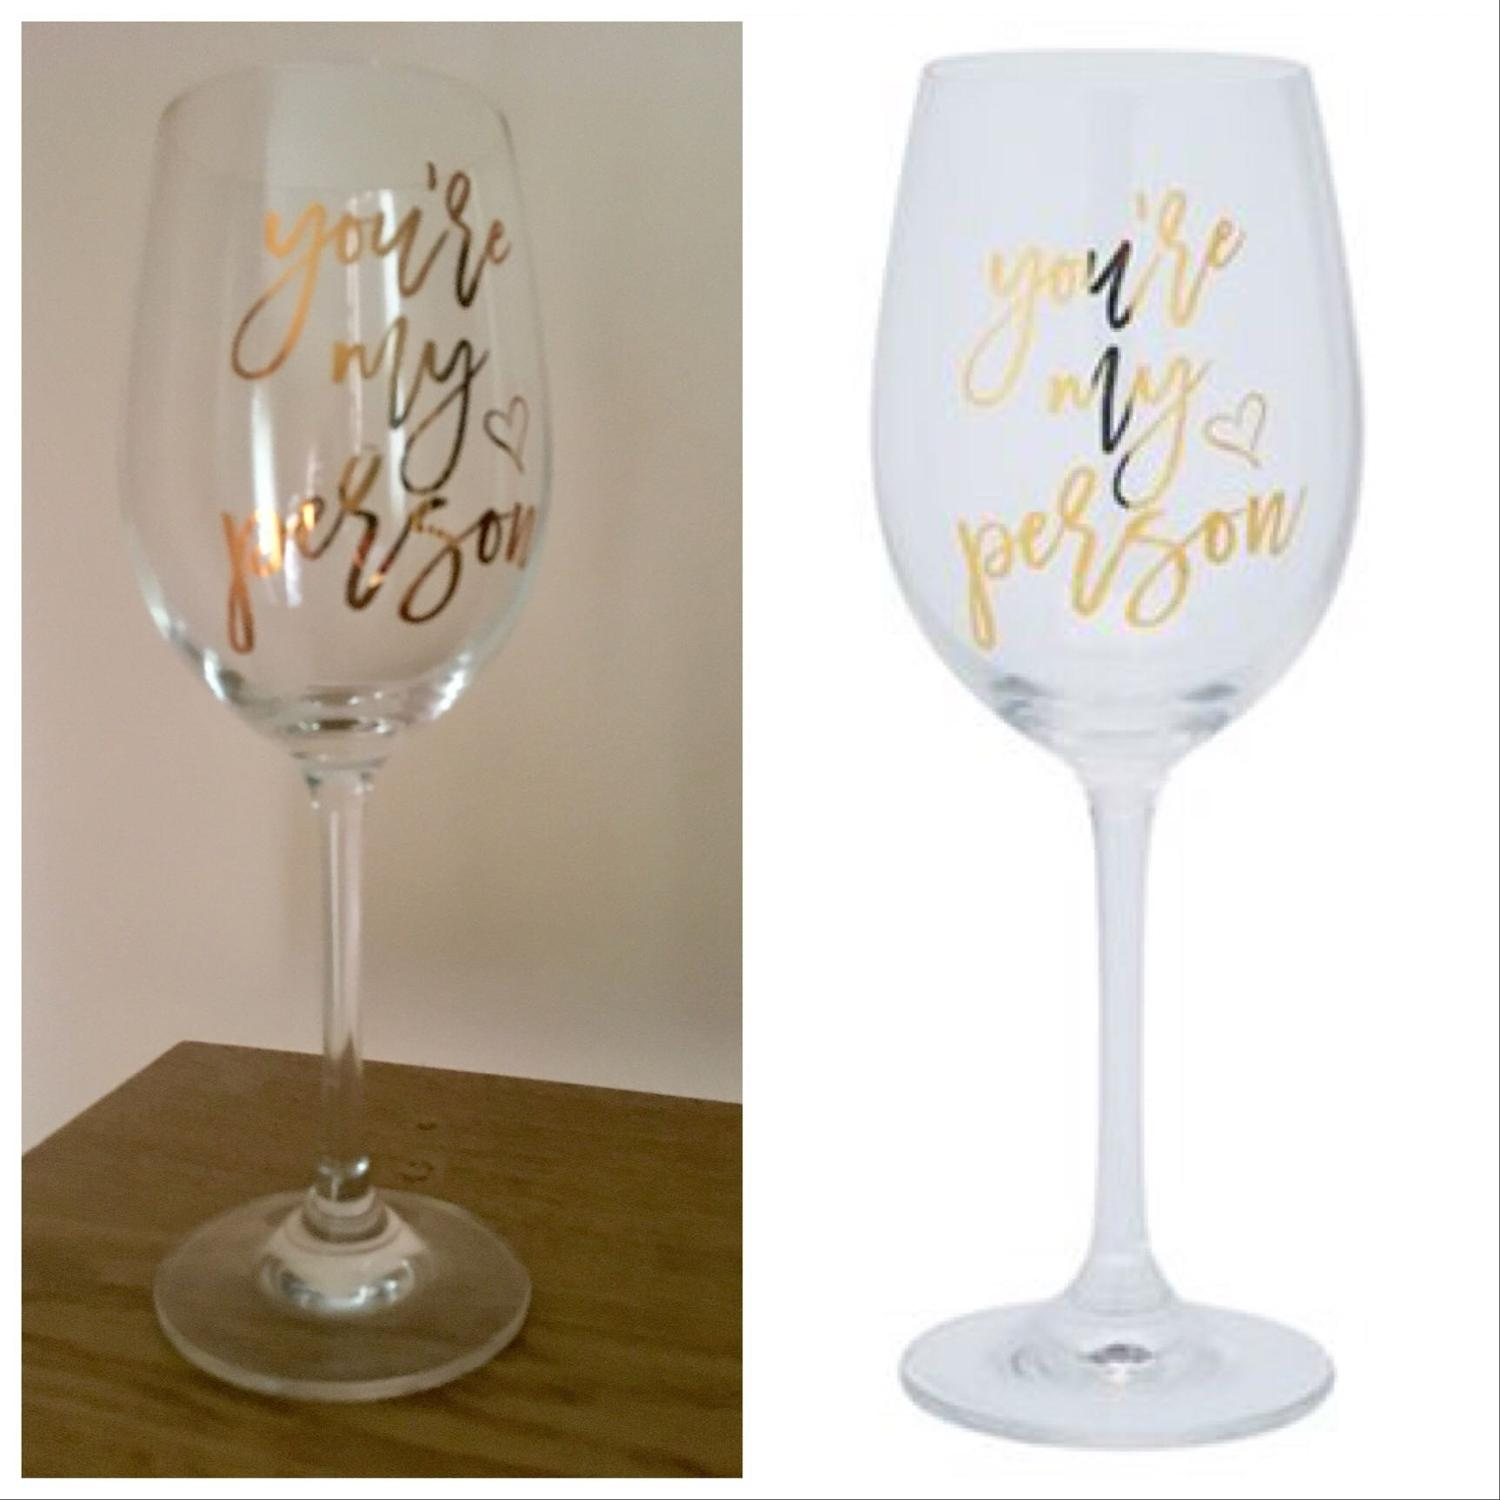 Find More Bnib Stemmed Wine Glass You Re My Person For Sale At Up To 90 Off